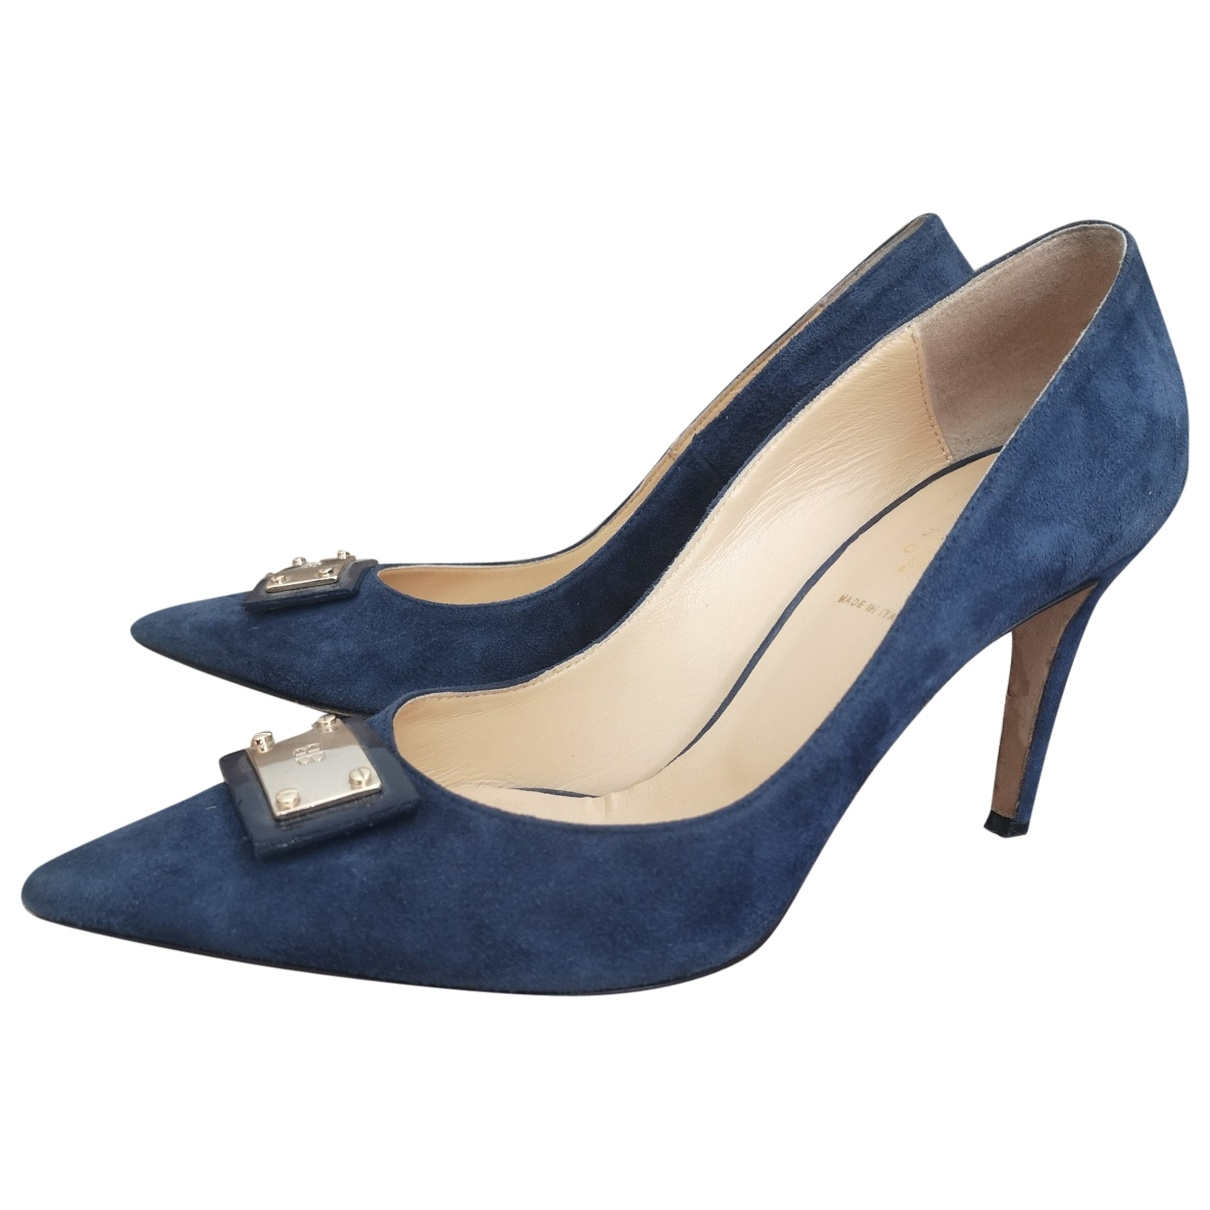 Baldinini \N Blue Leather Heels for Women 38 EU